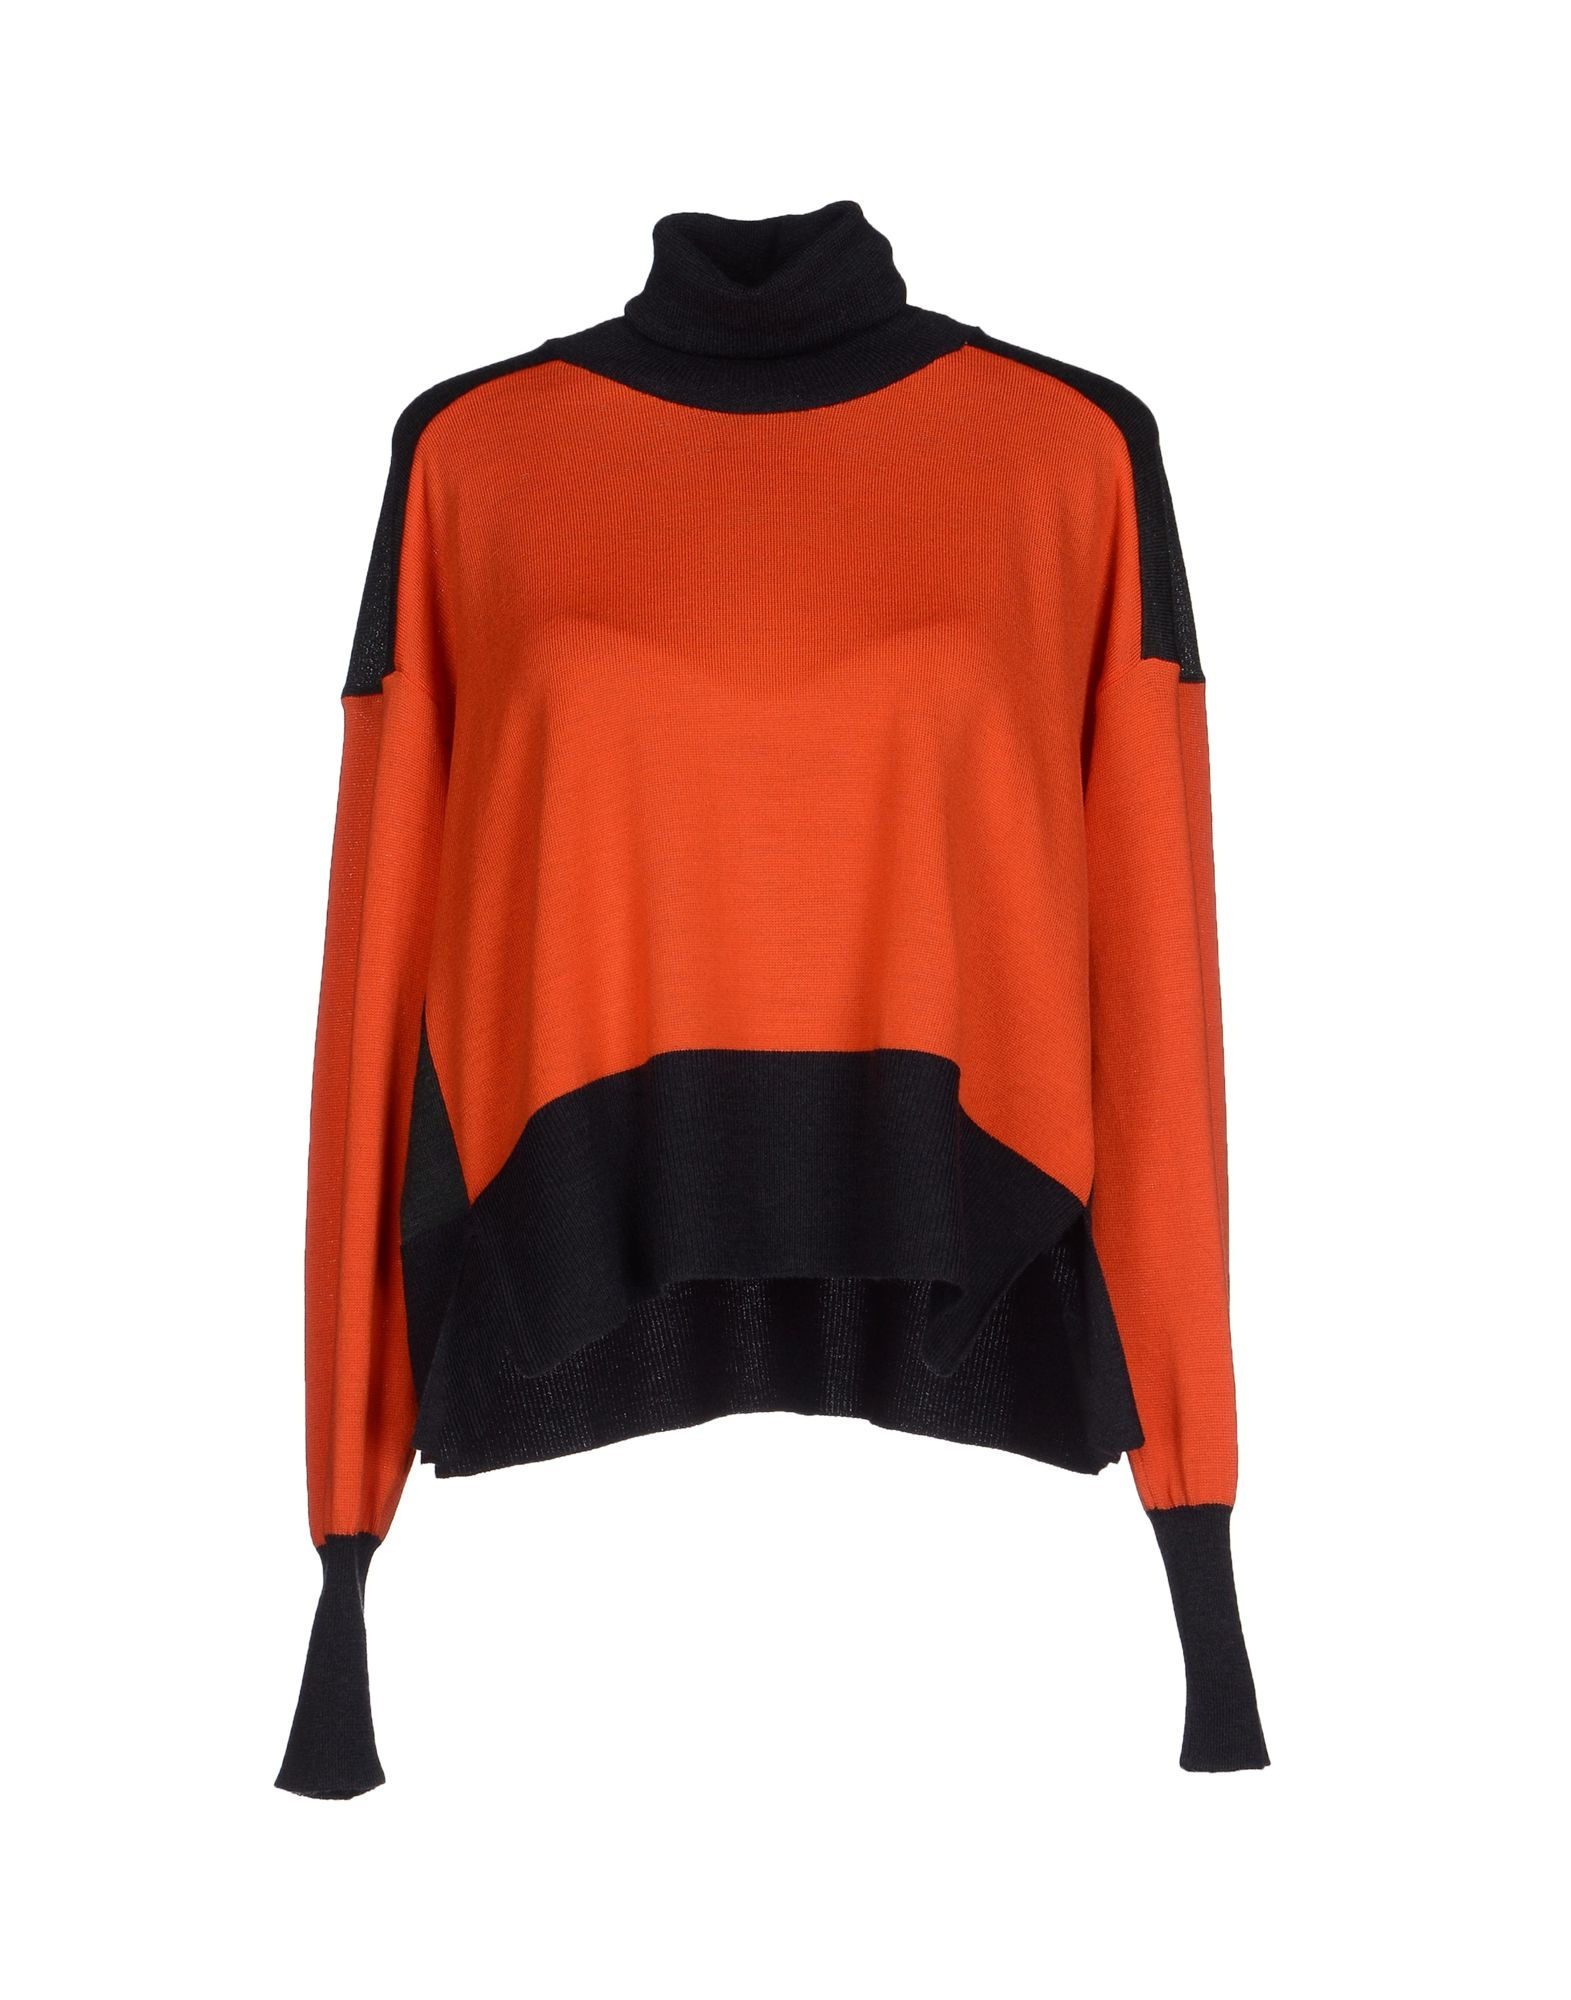 Mm6 by maison martin margiela turtleneck in orange lyst for Mm6 maison margiela